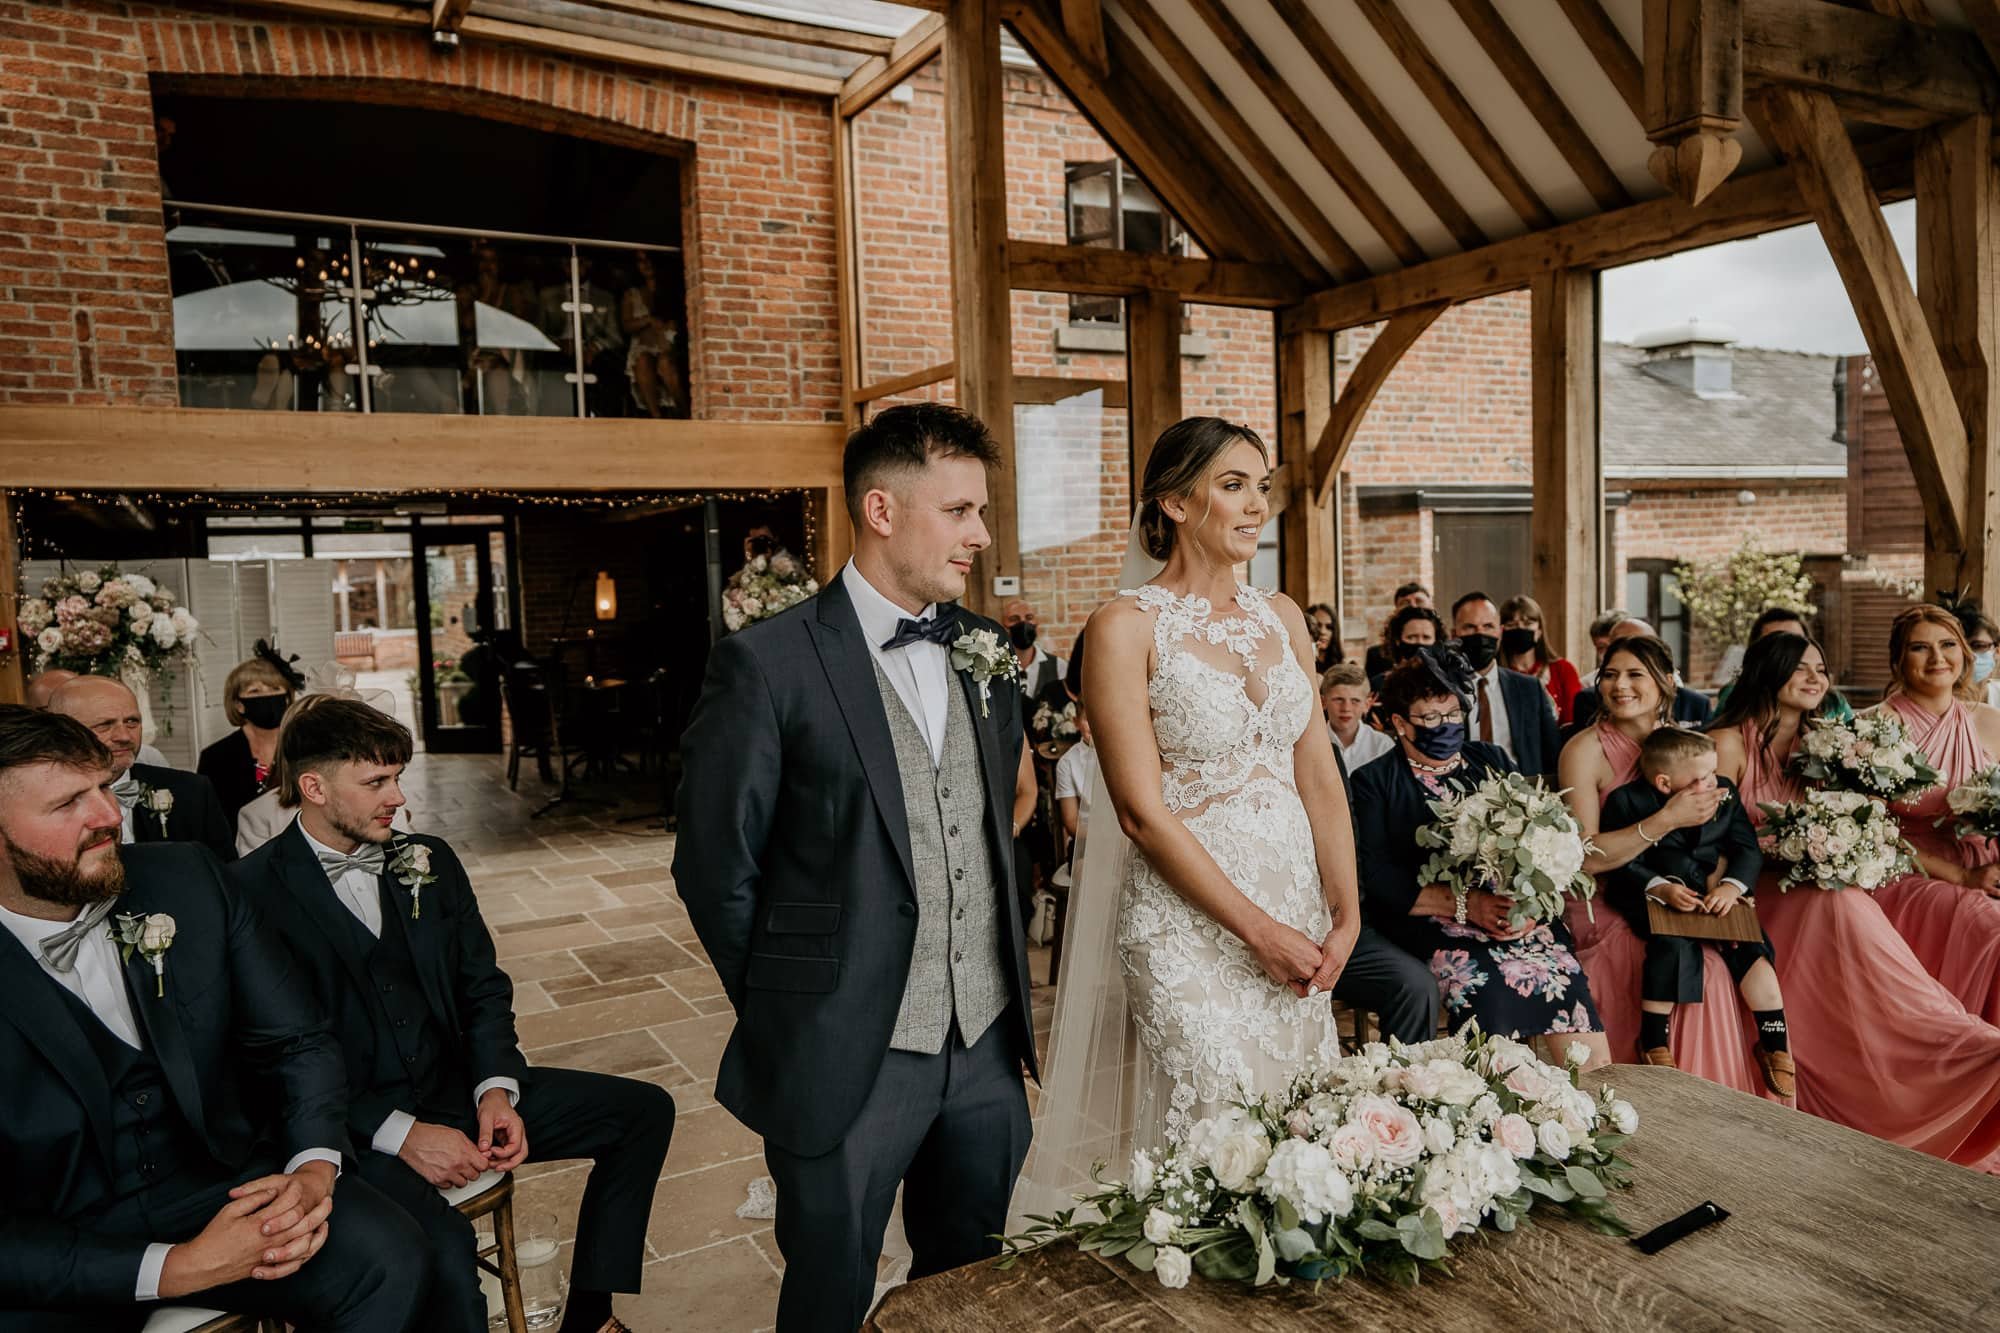 Bride and Groom getting married at Swancar Farm in Nottingham